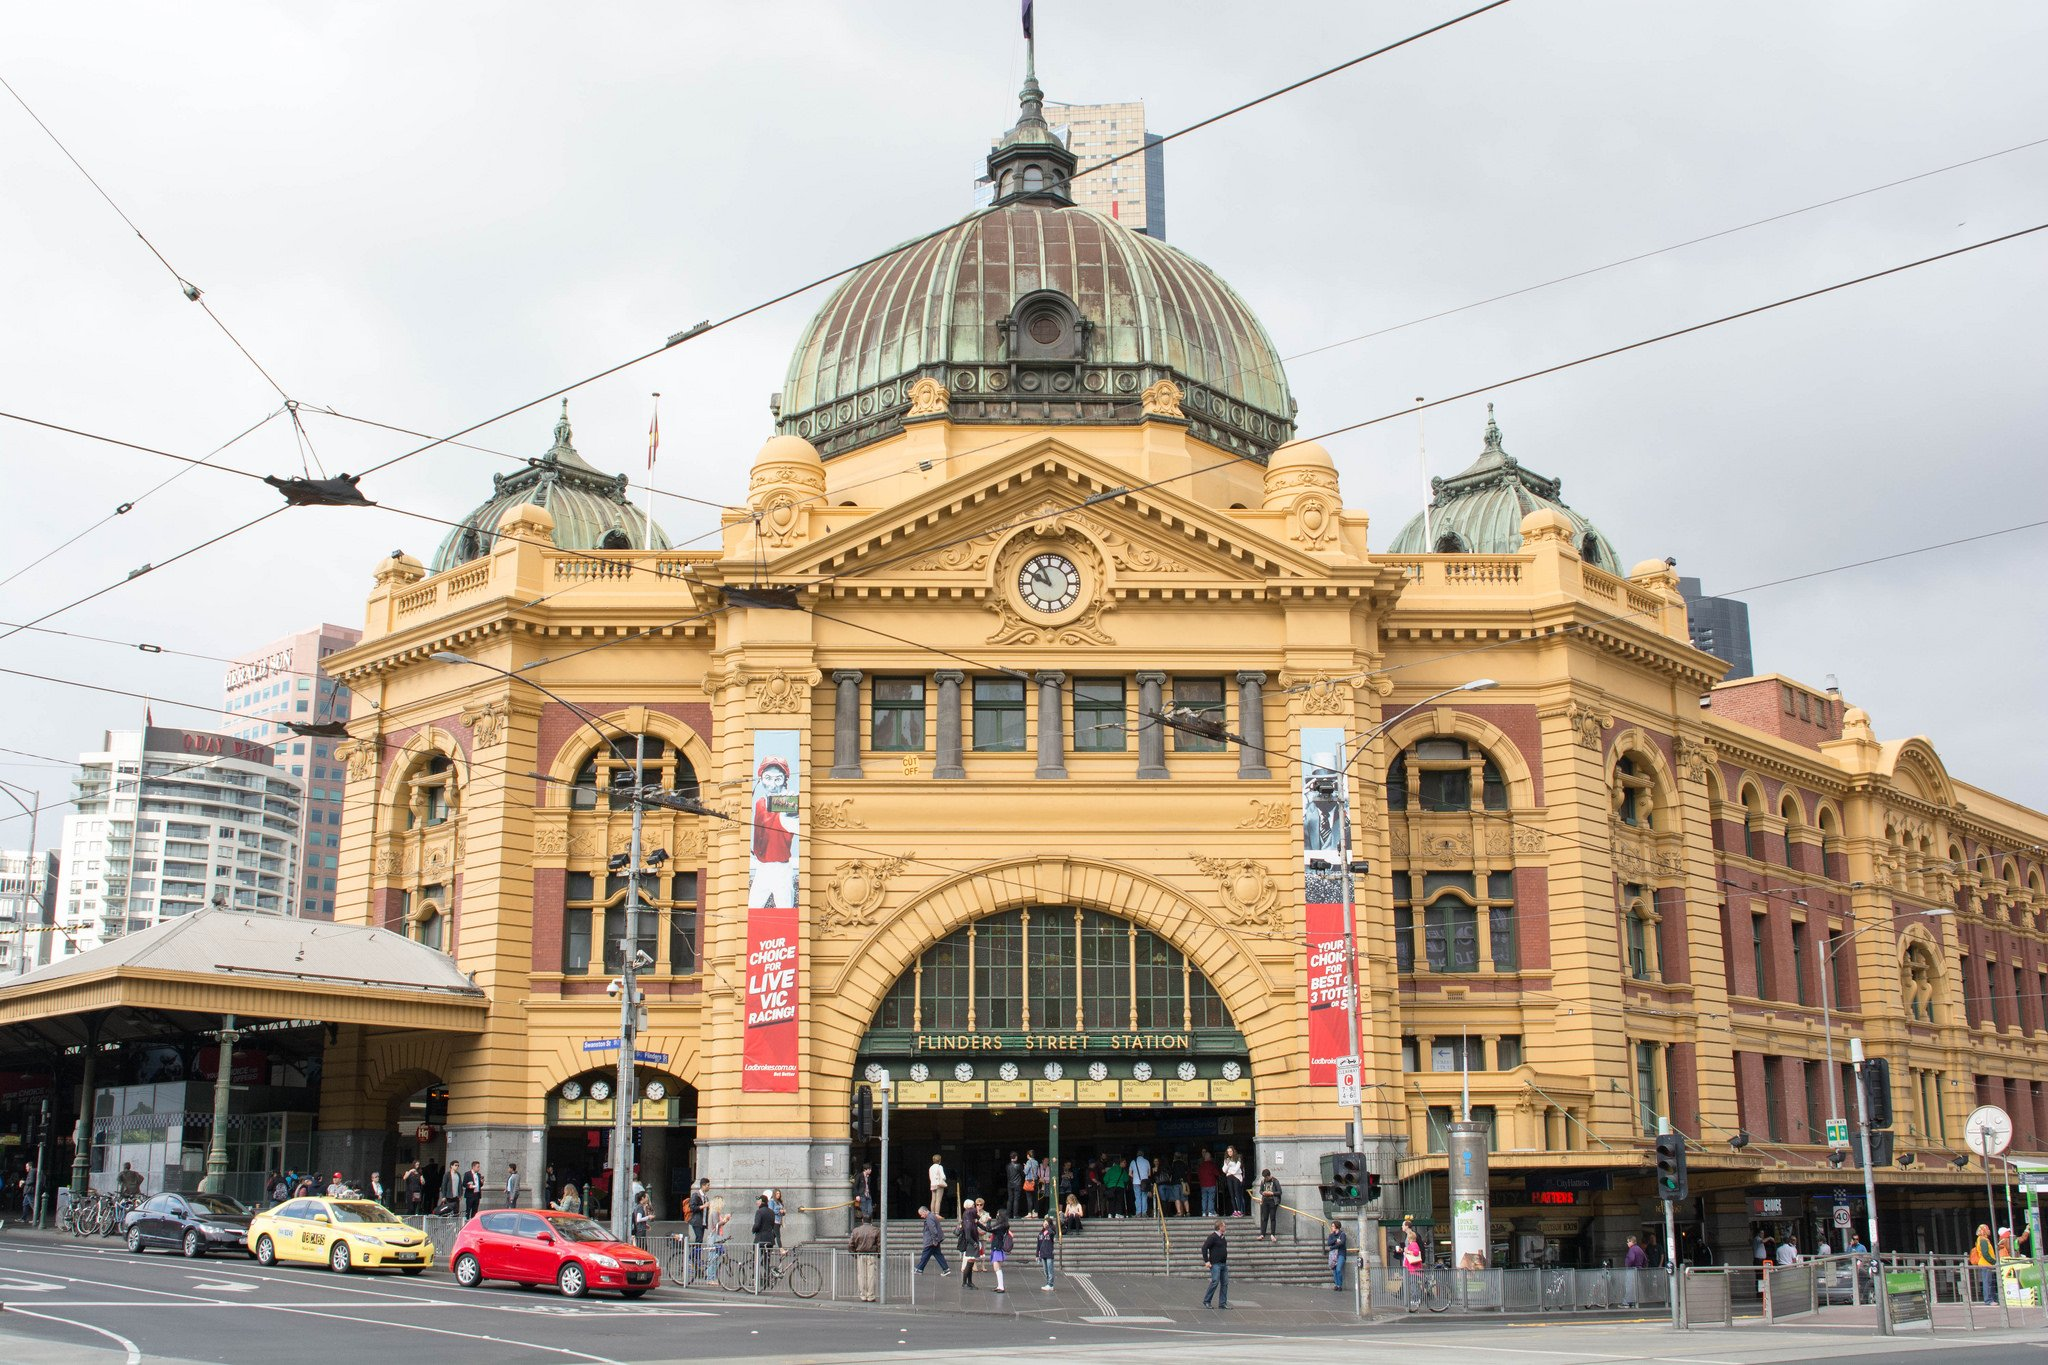 Flinders Street Station Melbourne by Nicki Mannix (CC)